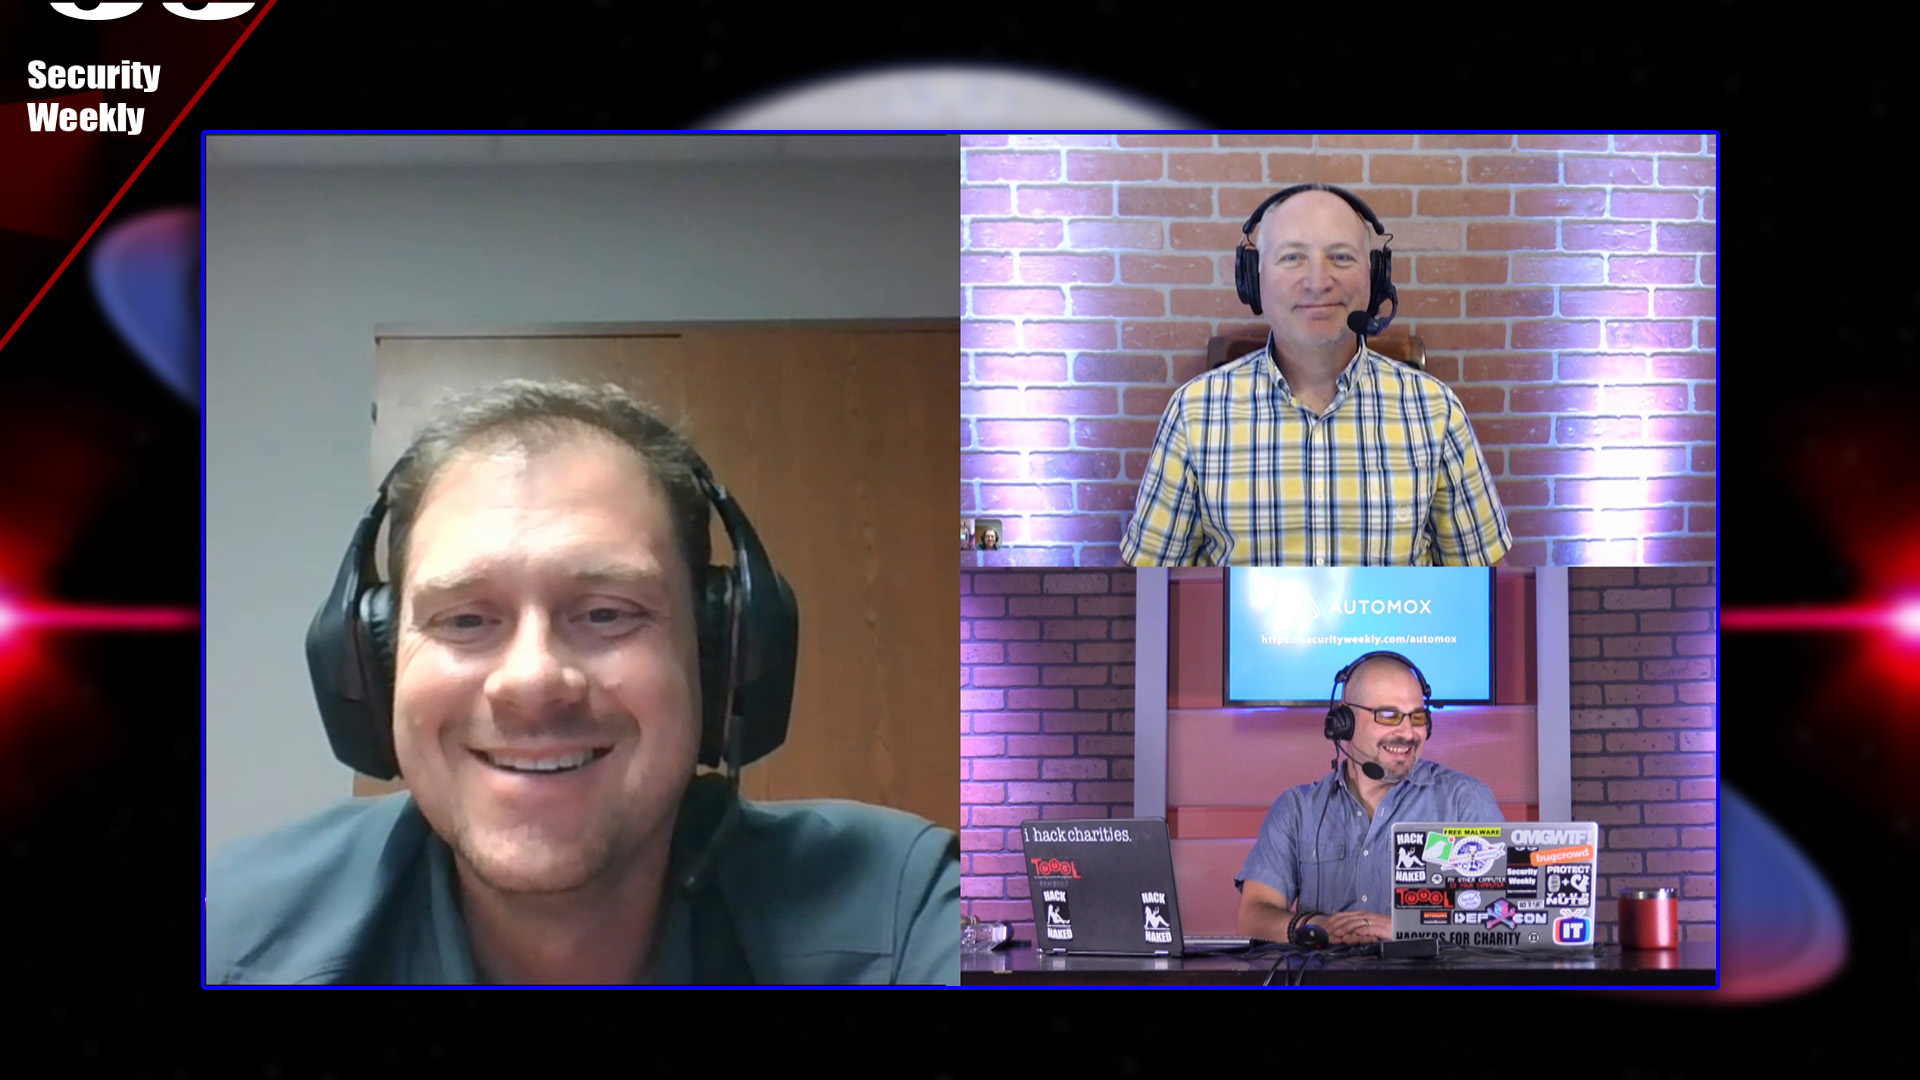 Paul's Security Weekly | Podbay